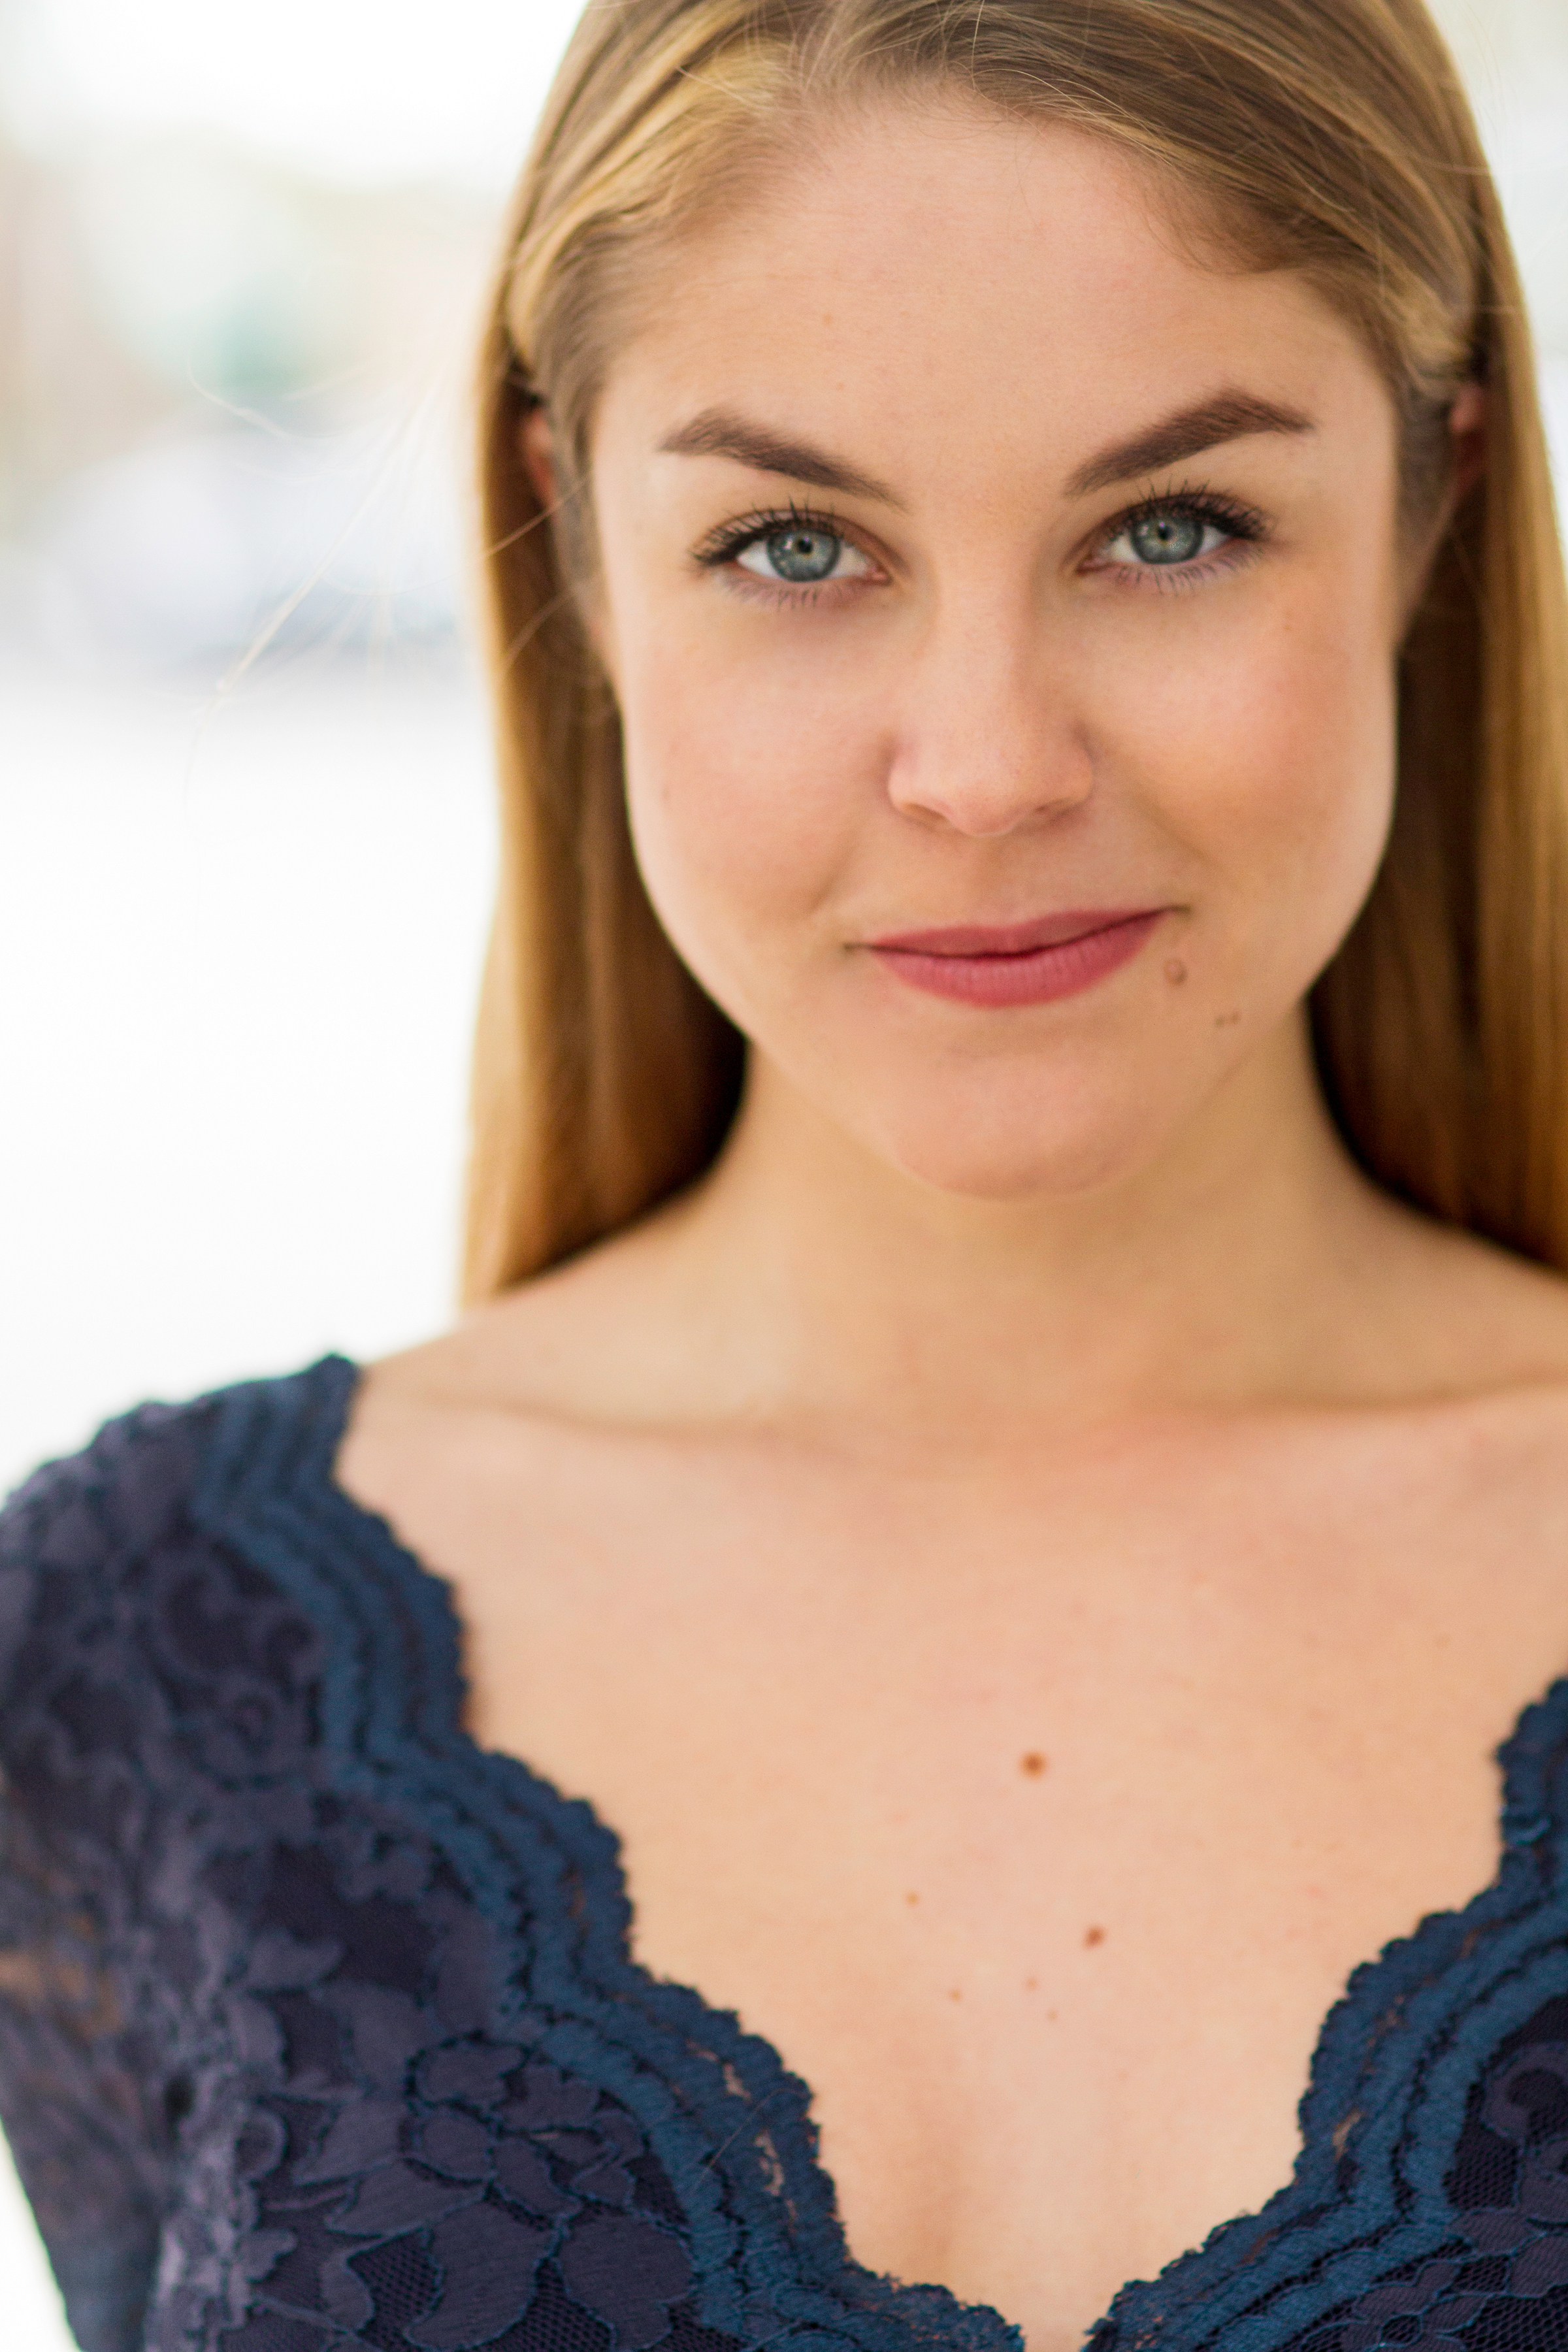 Brooke's Headshot